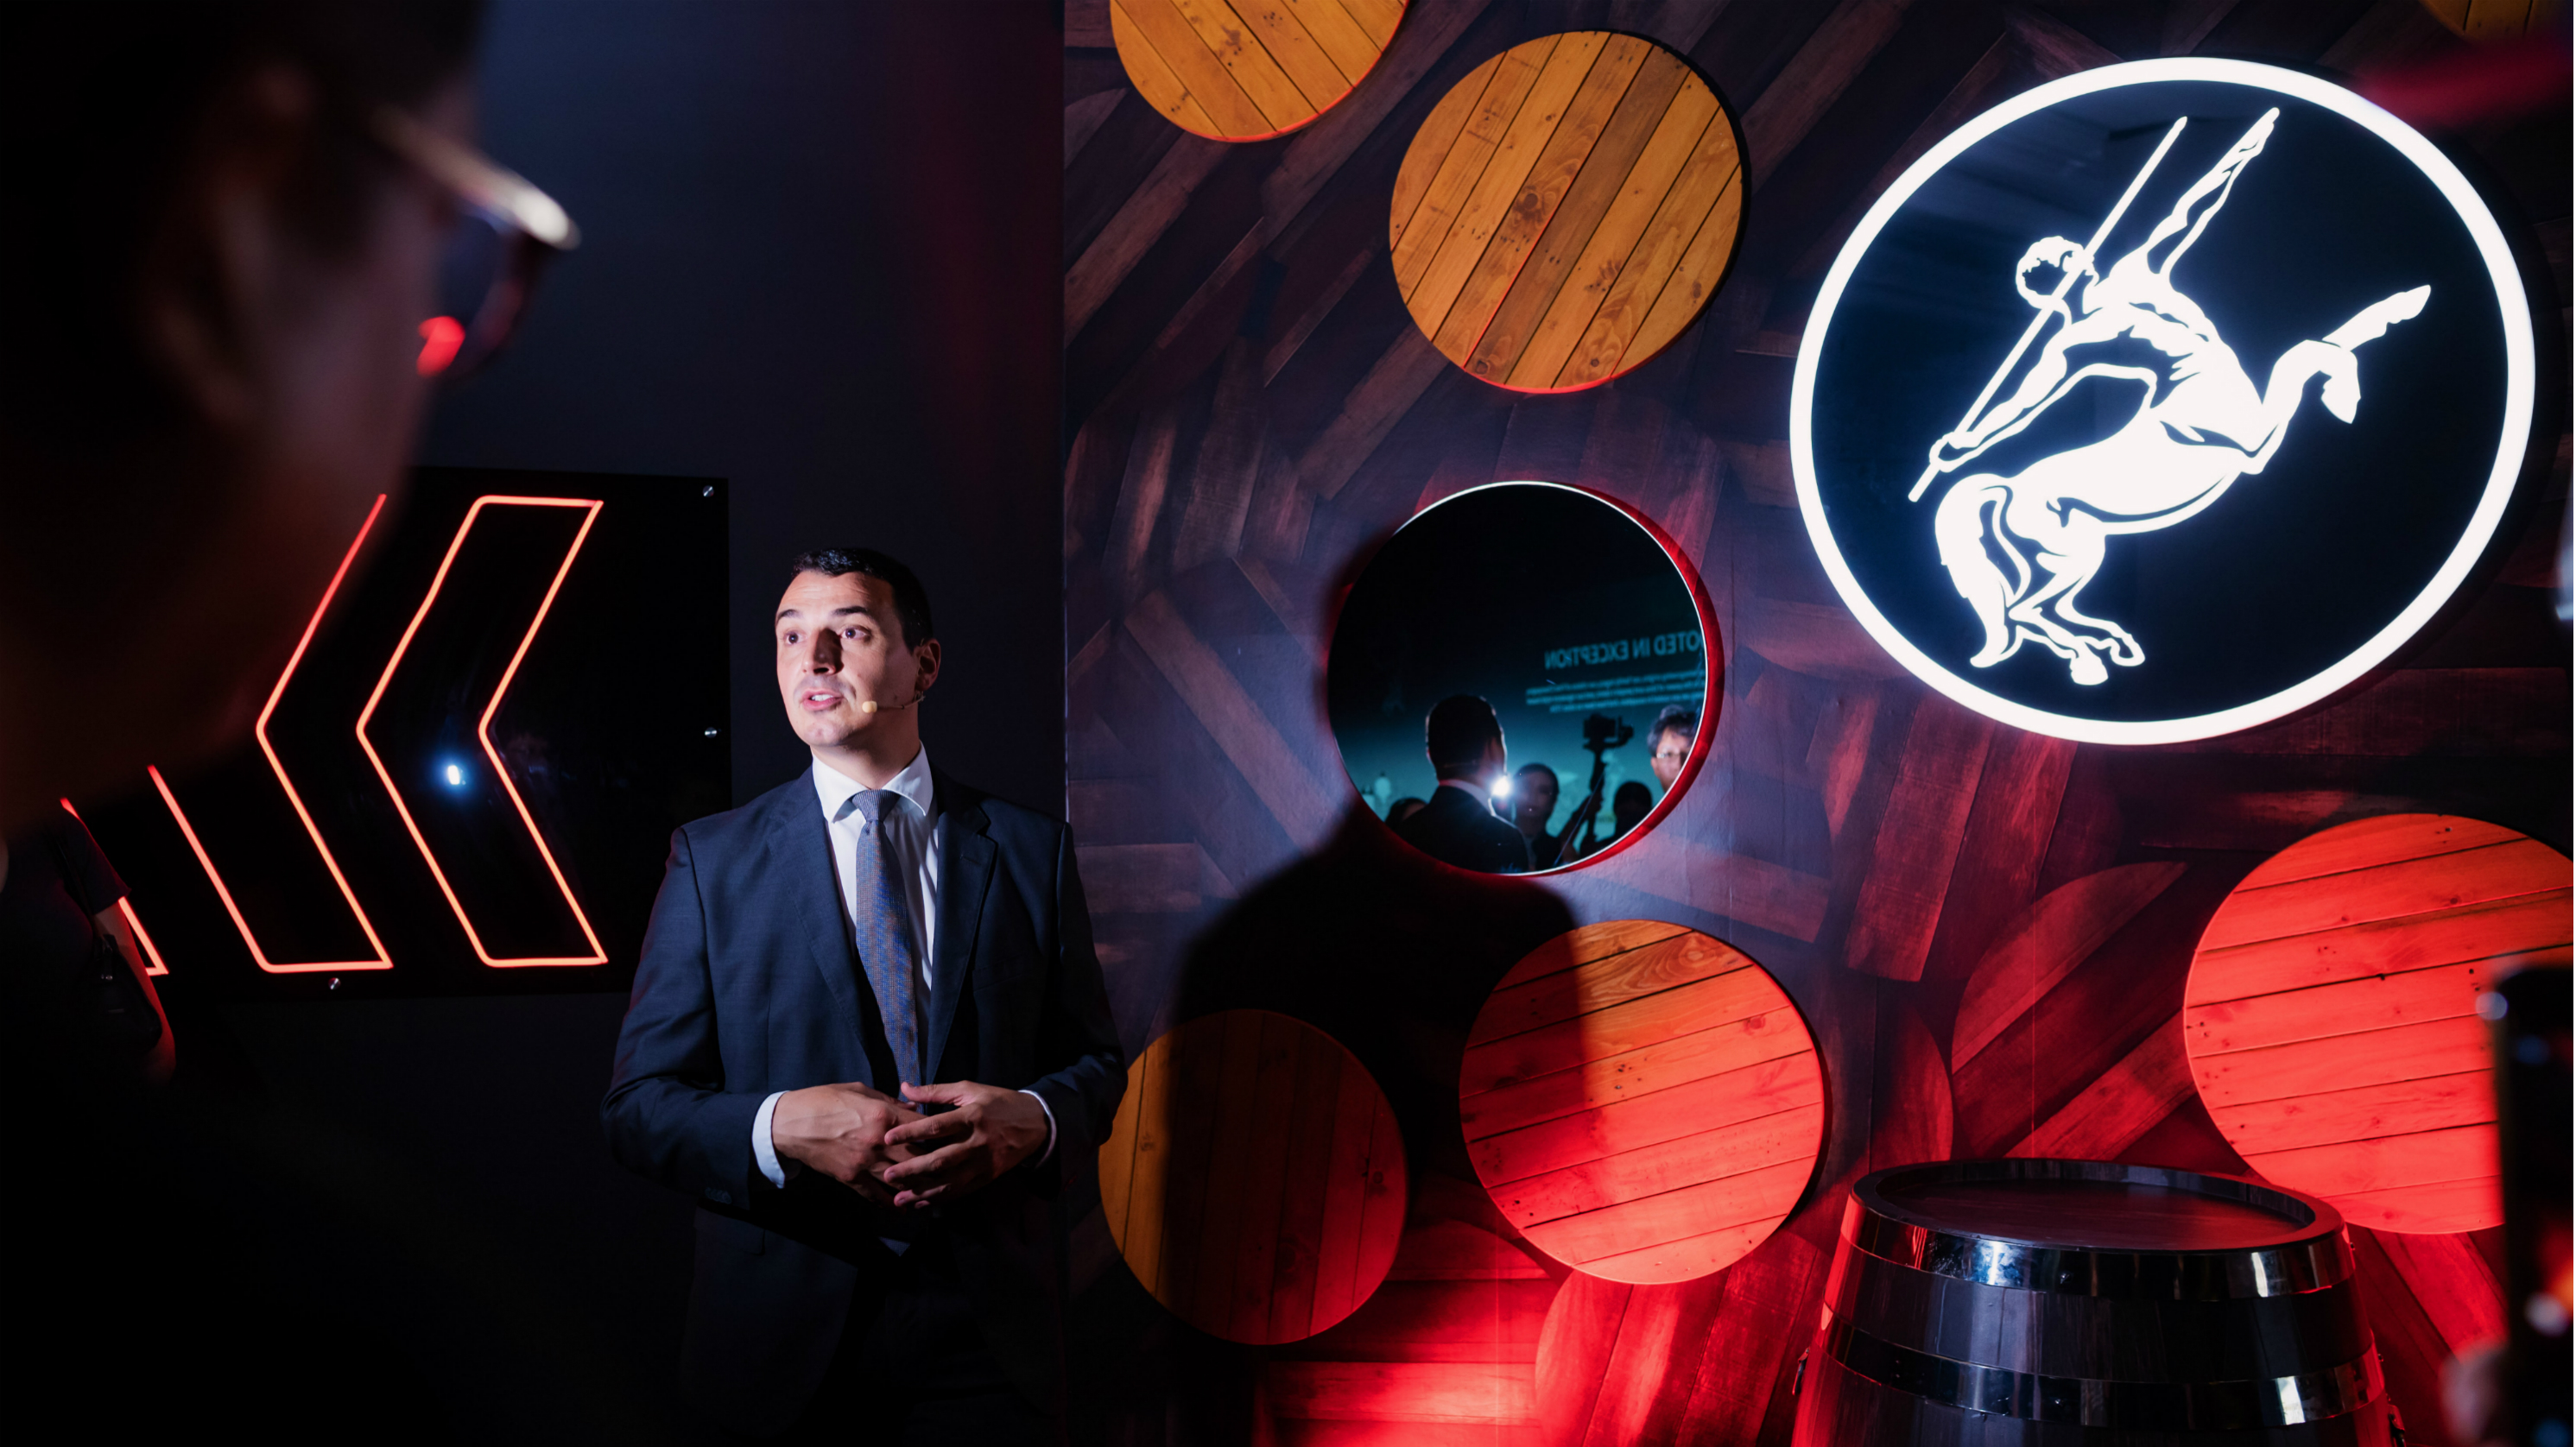 La Maison Rémy Martin lands for the first time in South East Asia